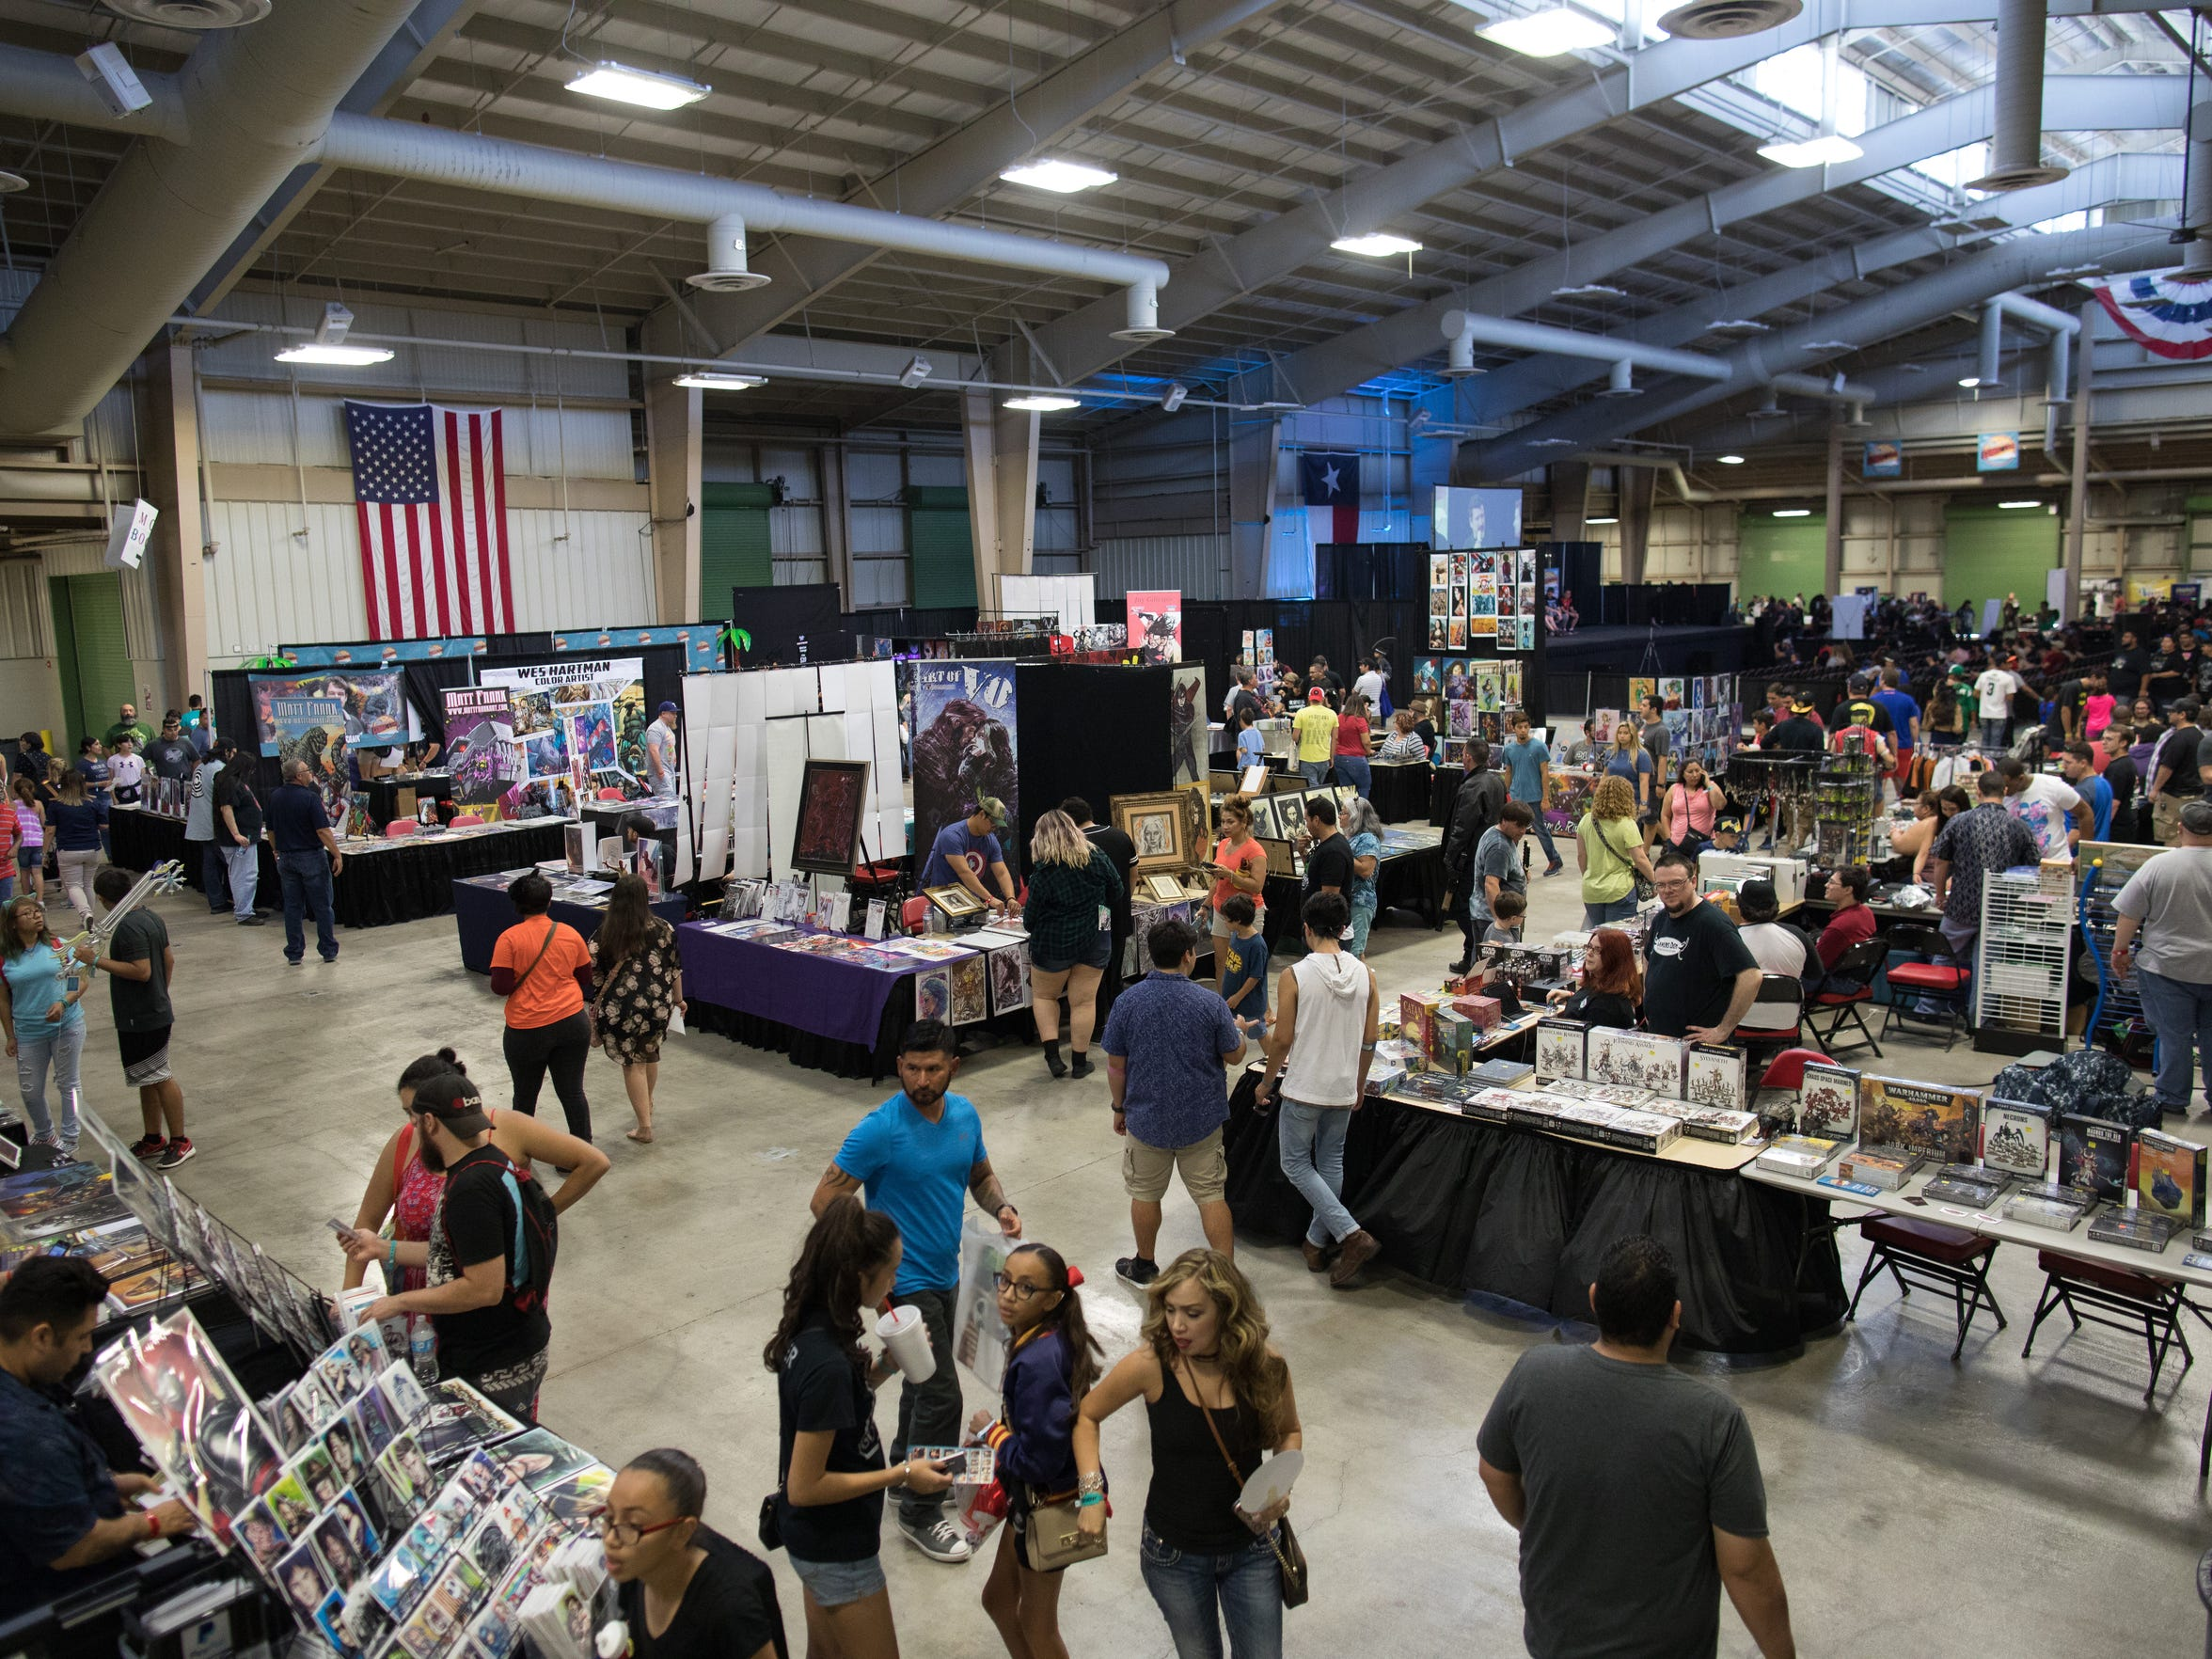 The Corpus Christi Comic Con at Richard M. Borchard Regional Fairgrounds in Robstown on Saturday, July 22, 2017.